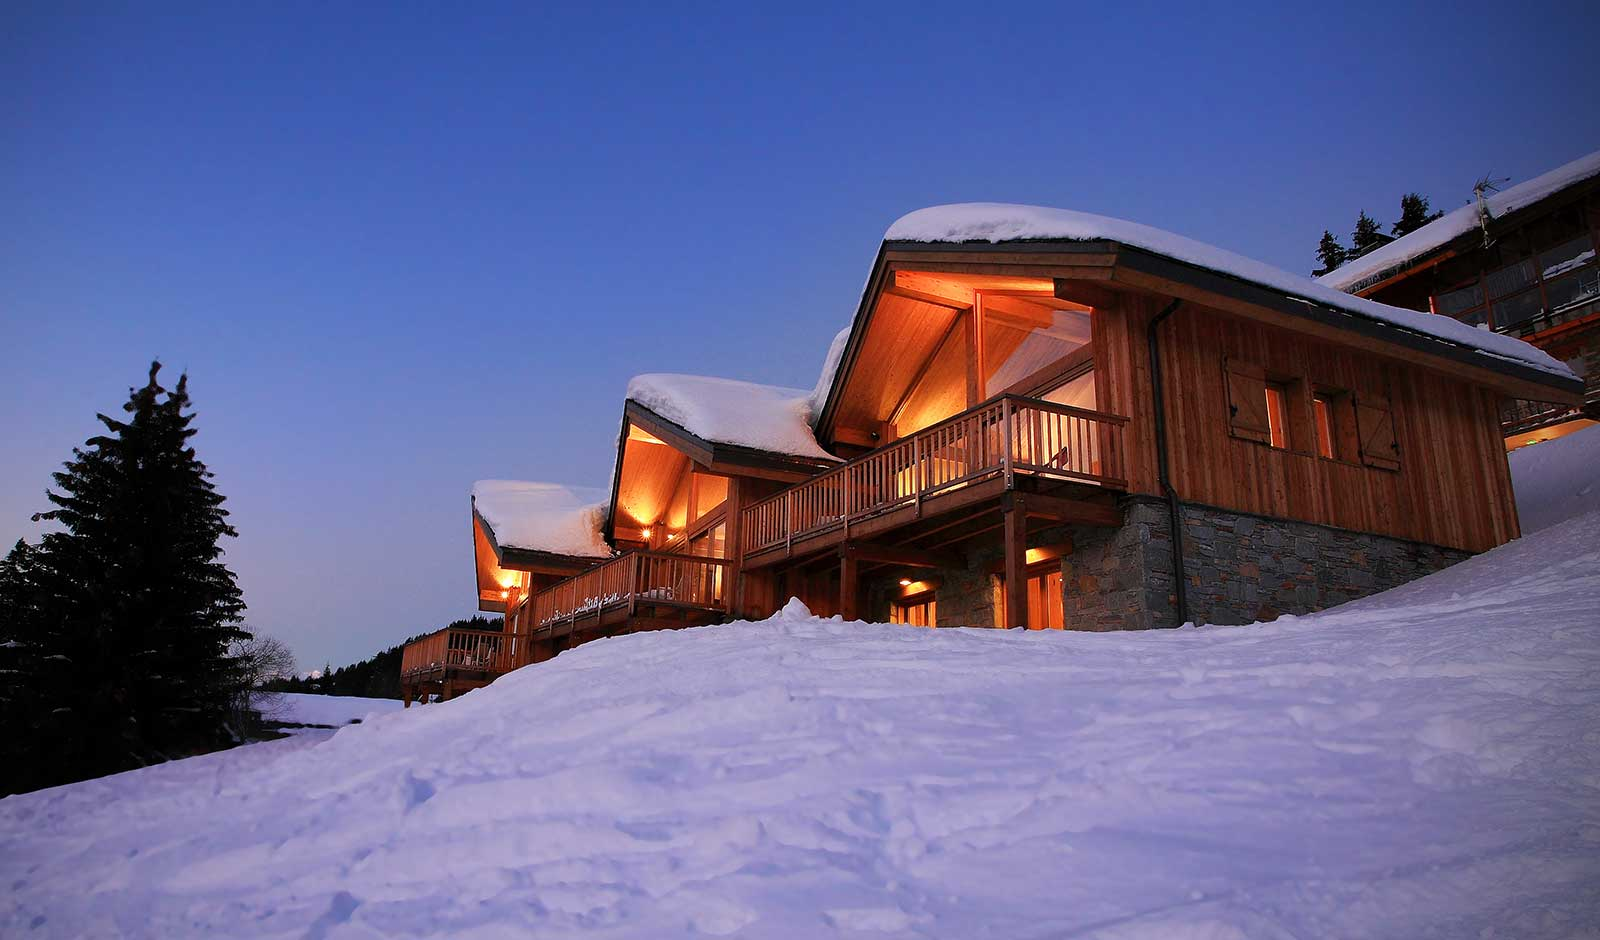 hotel-adray-telebar-13-atelier-crea-and-co-architecte-design-project-manager-meribel-savoie